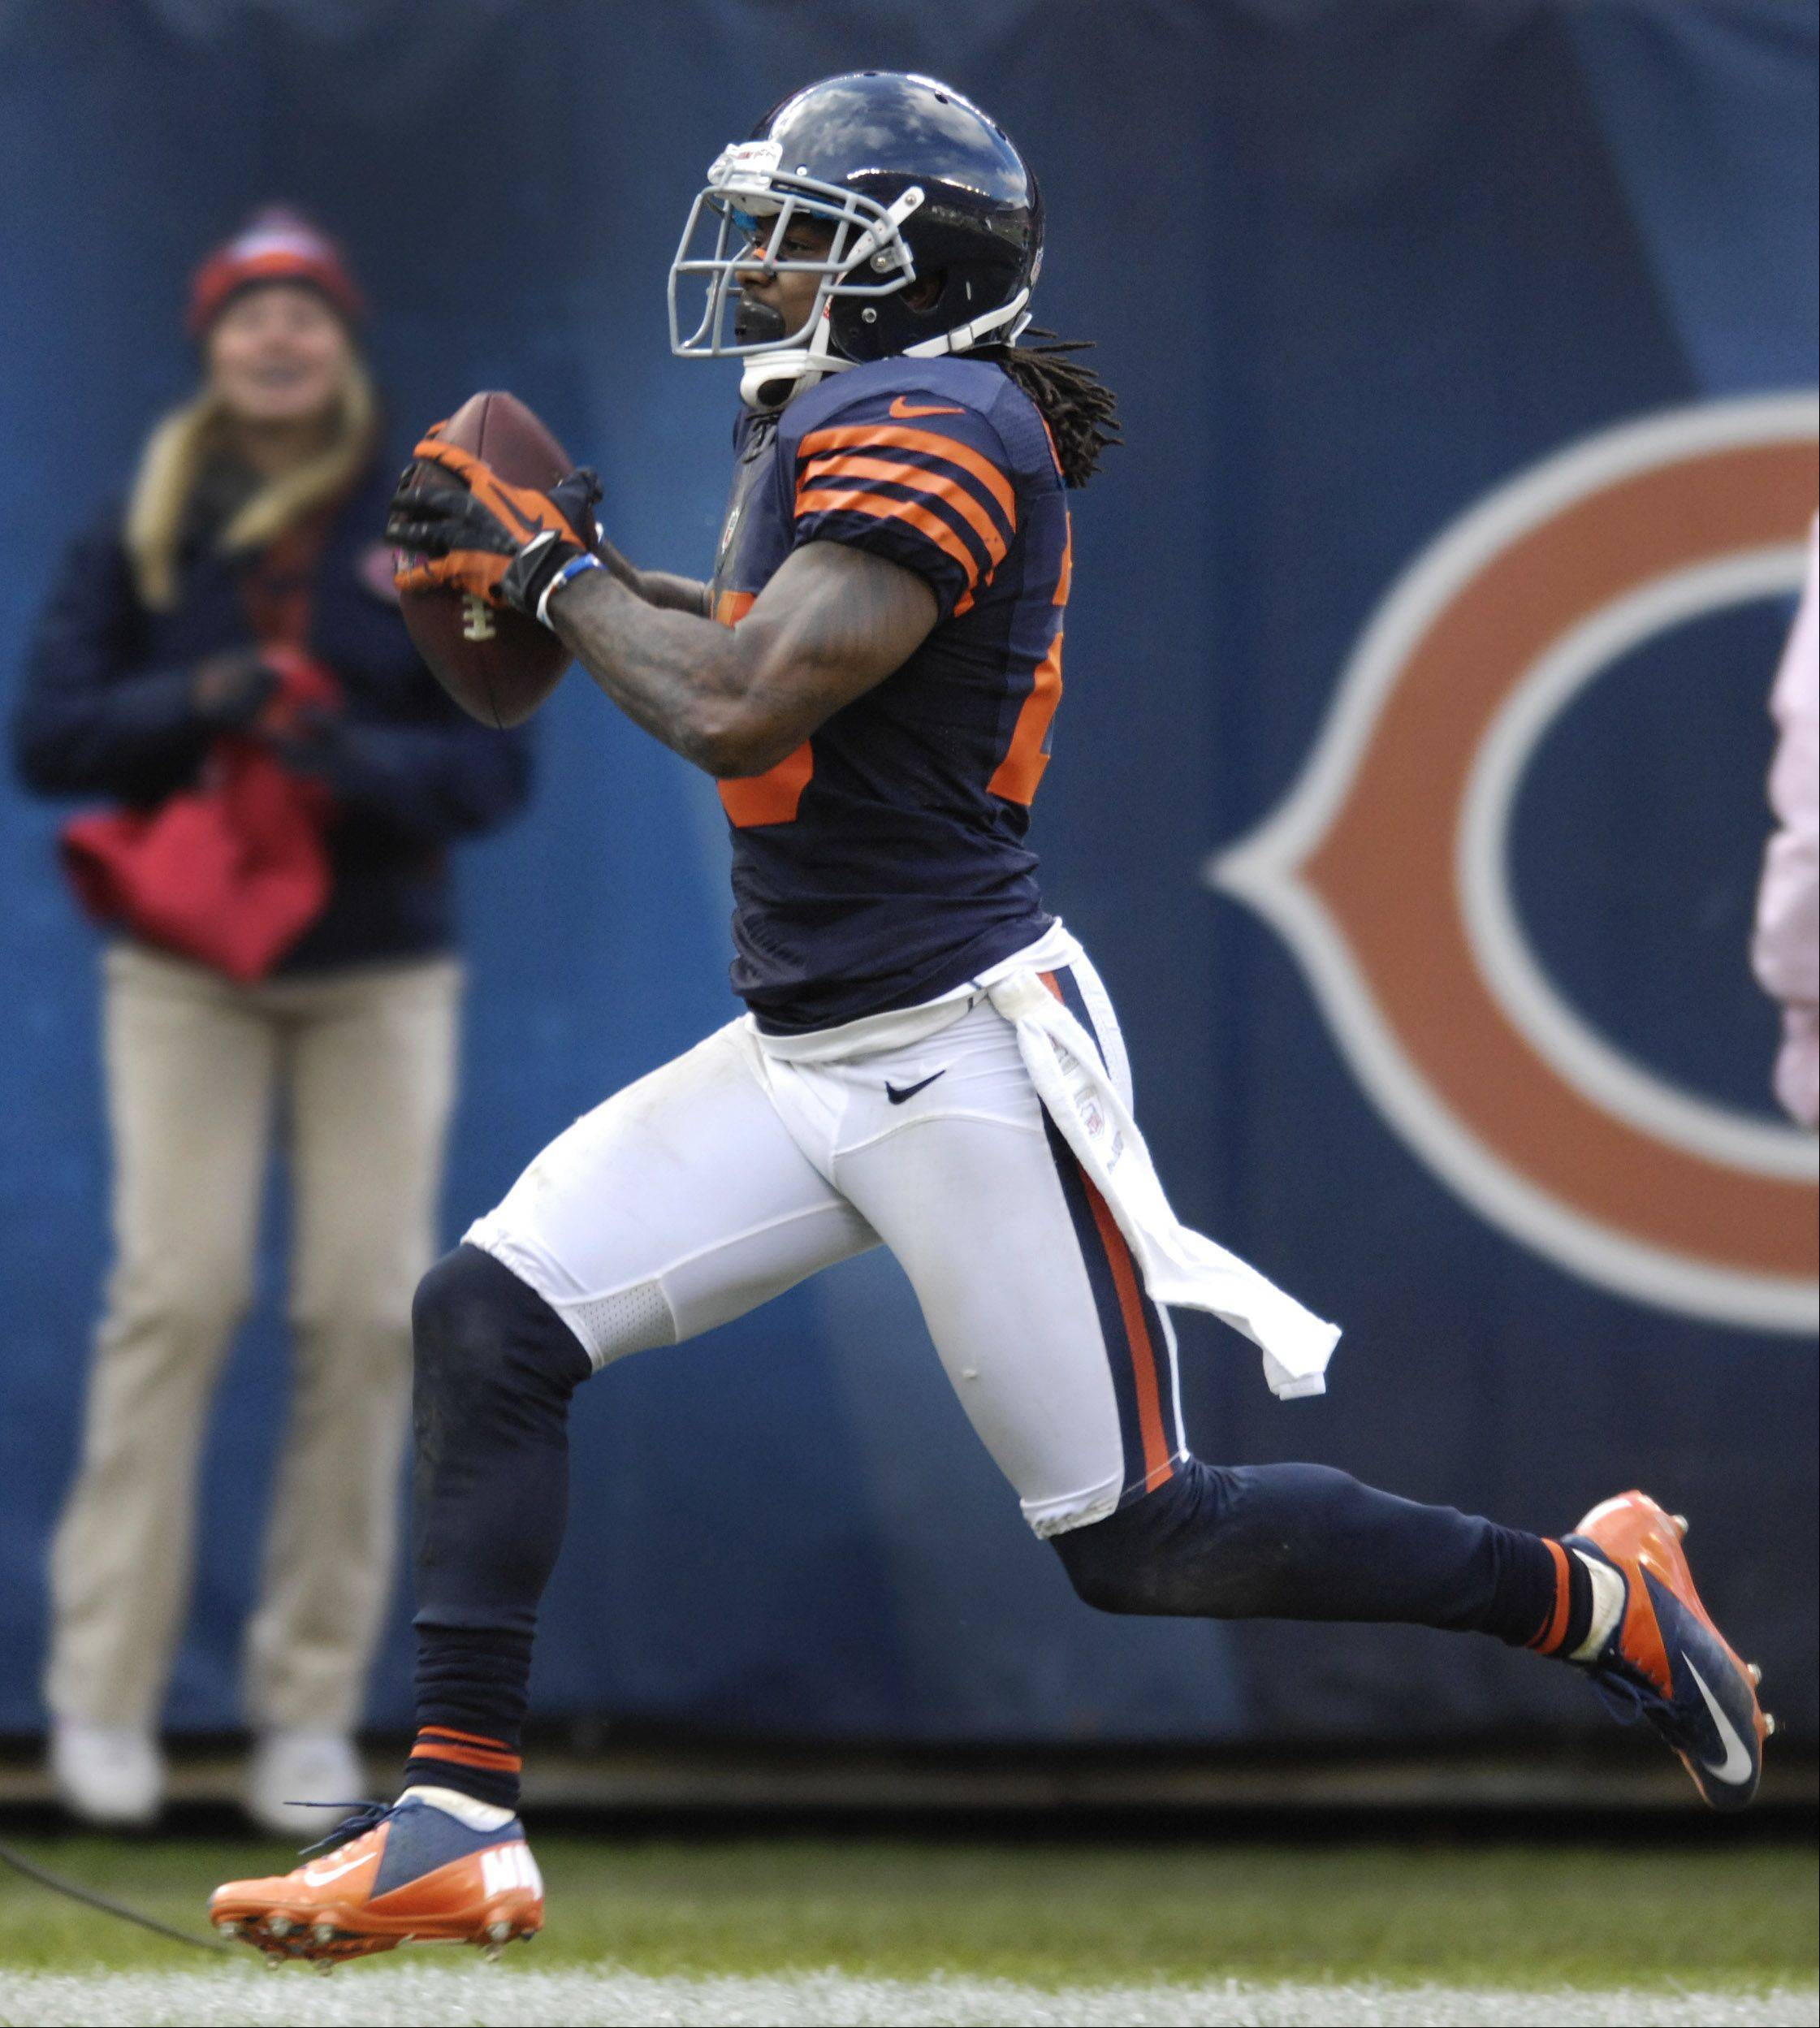 Chicago Bears cornerback Tim Jennings runs an interception for a touchdown during Sunday's game against the Carolina Panthers at Soldier Field.